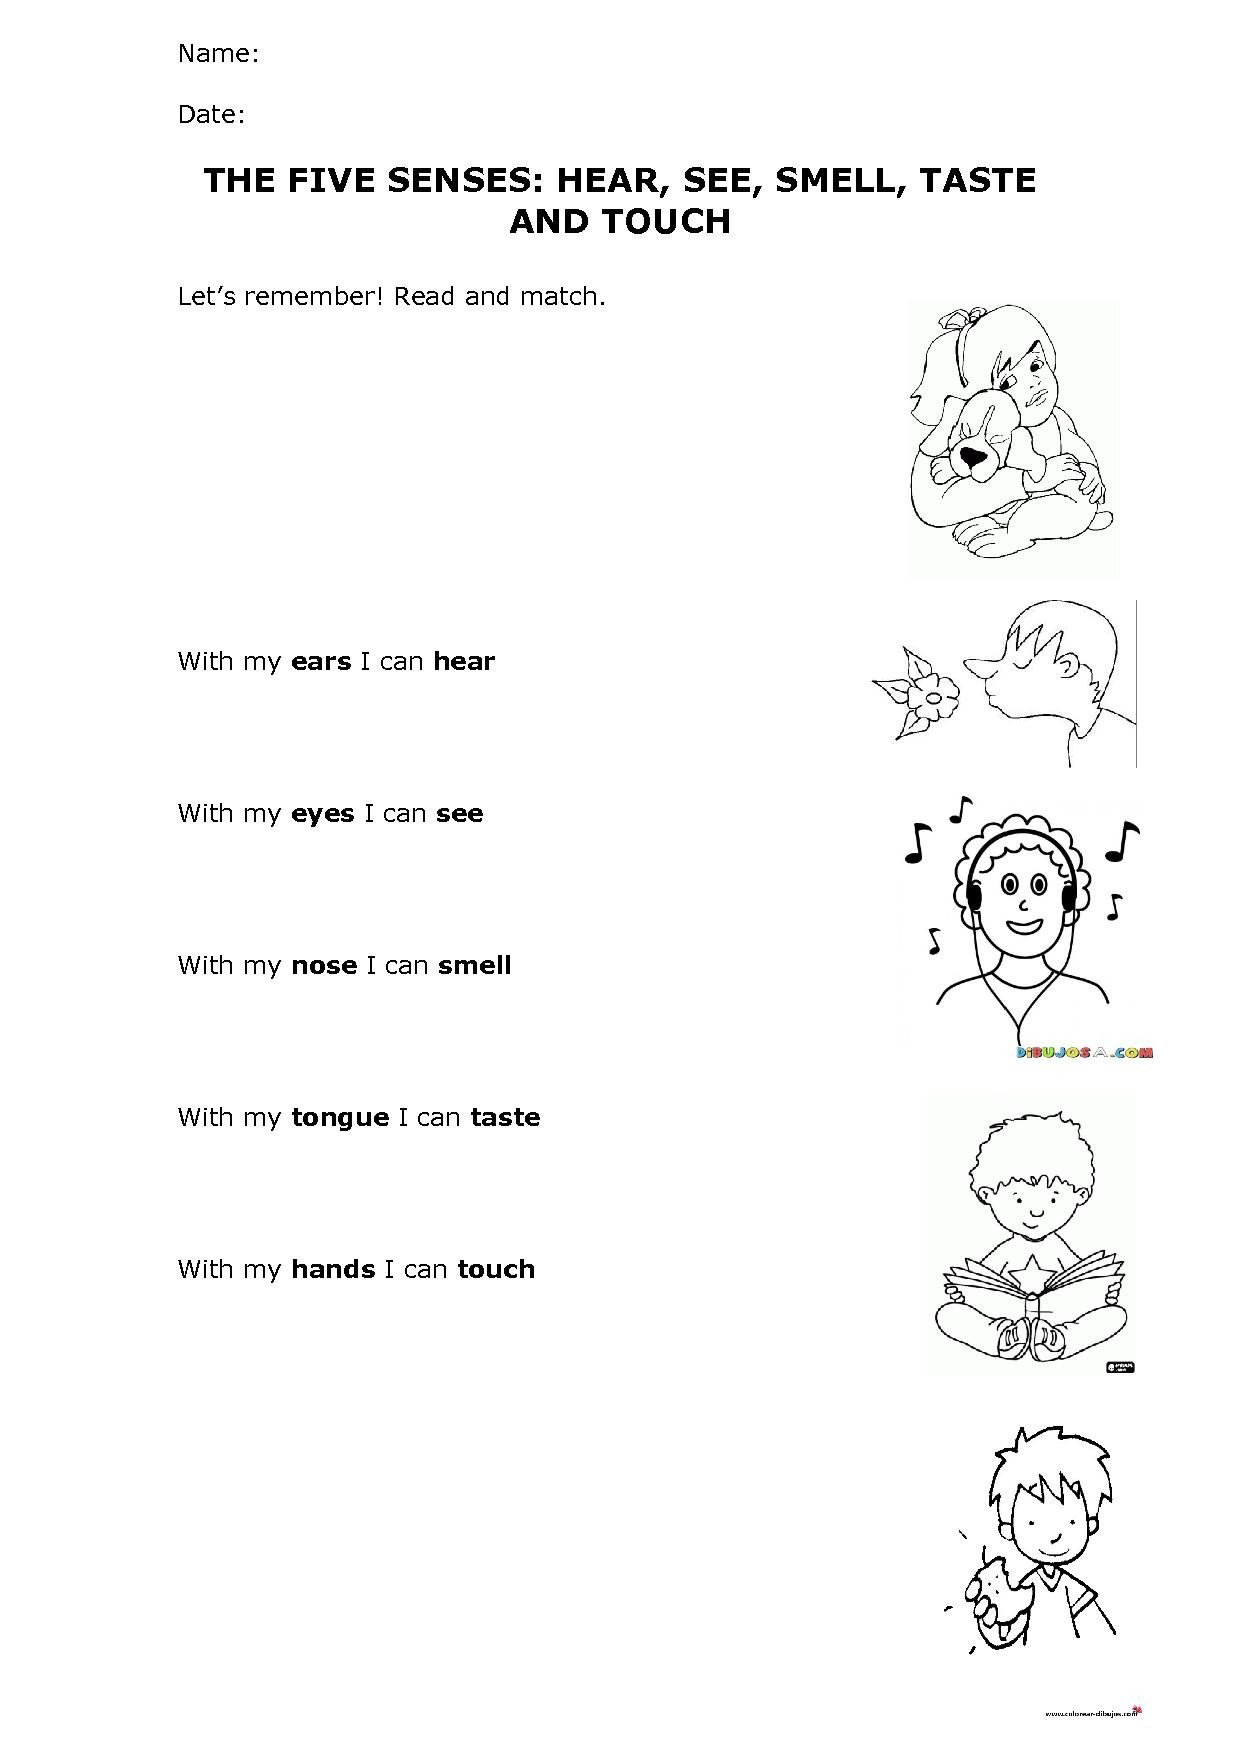 Sense Of Hearing Worksheet the Five Senses Hear See Smell Taste and touch Worksheet